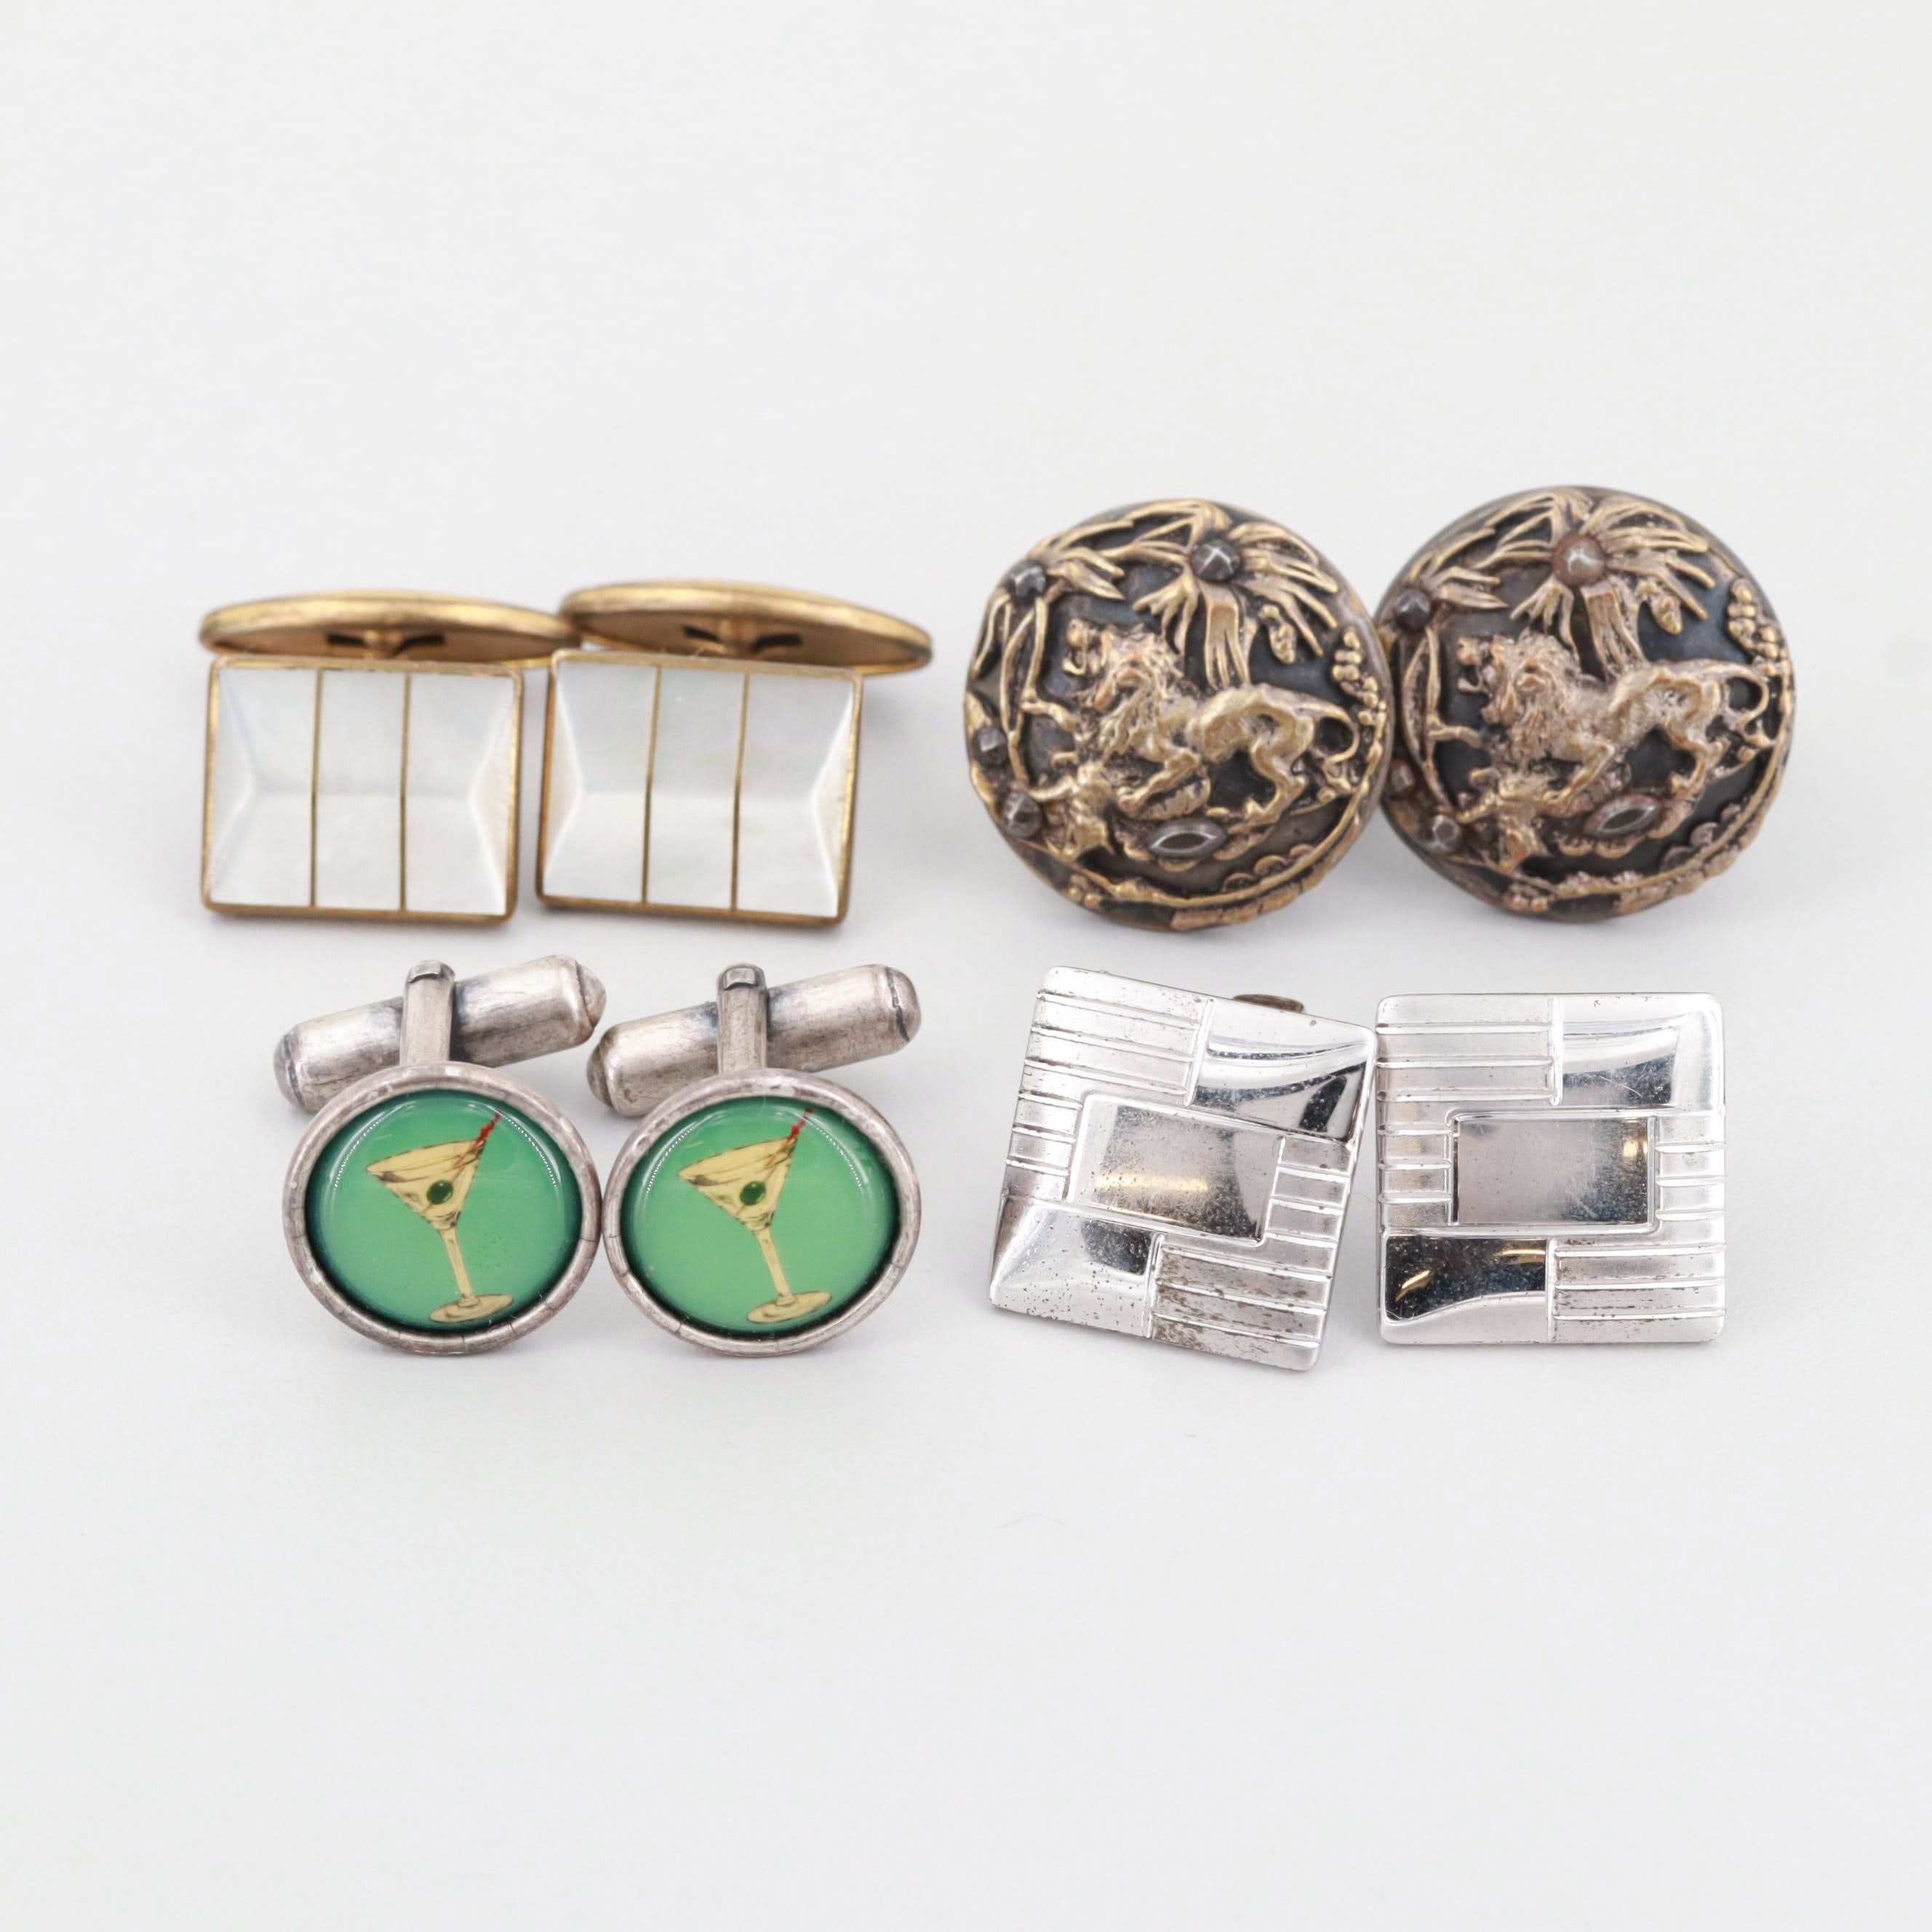 Vintage Collection of Cufflinks with Mother of Pearl and Enamel Accents